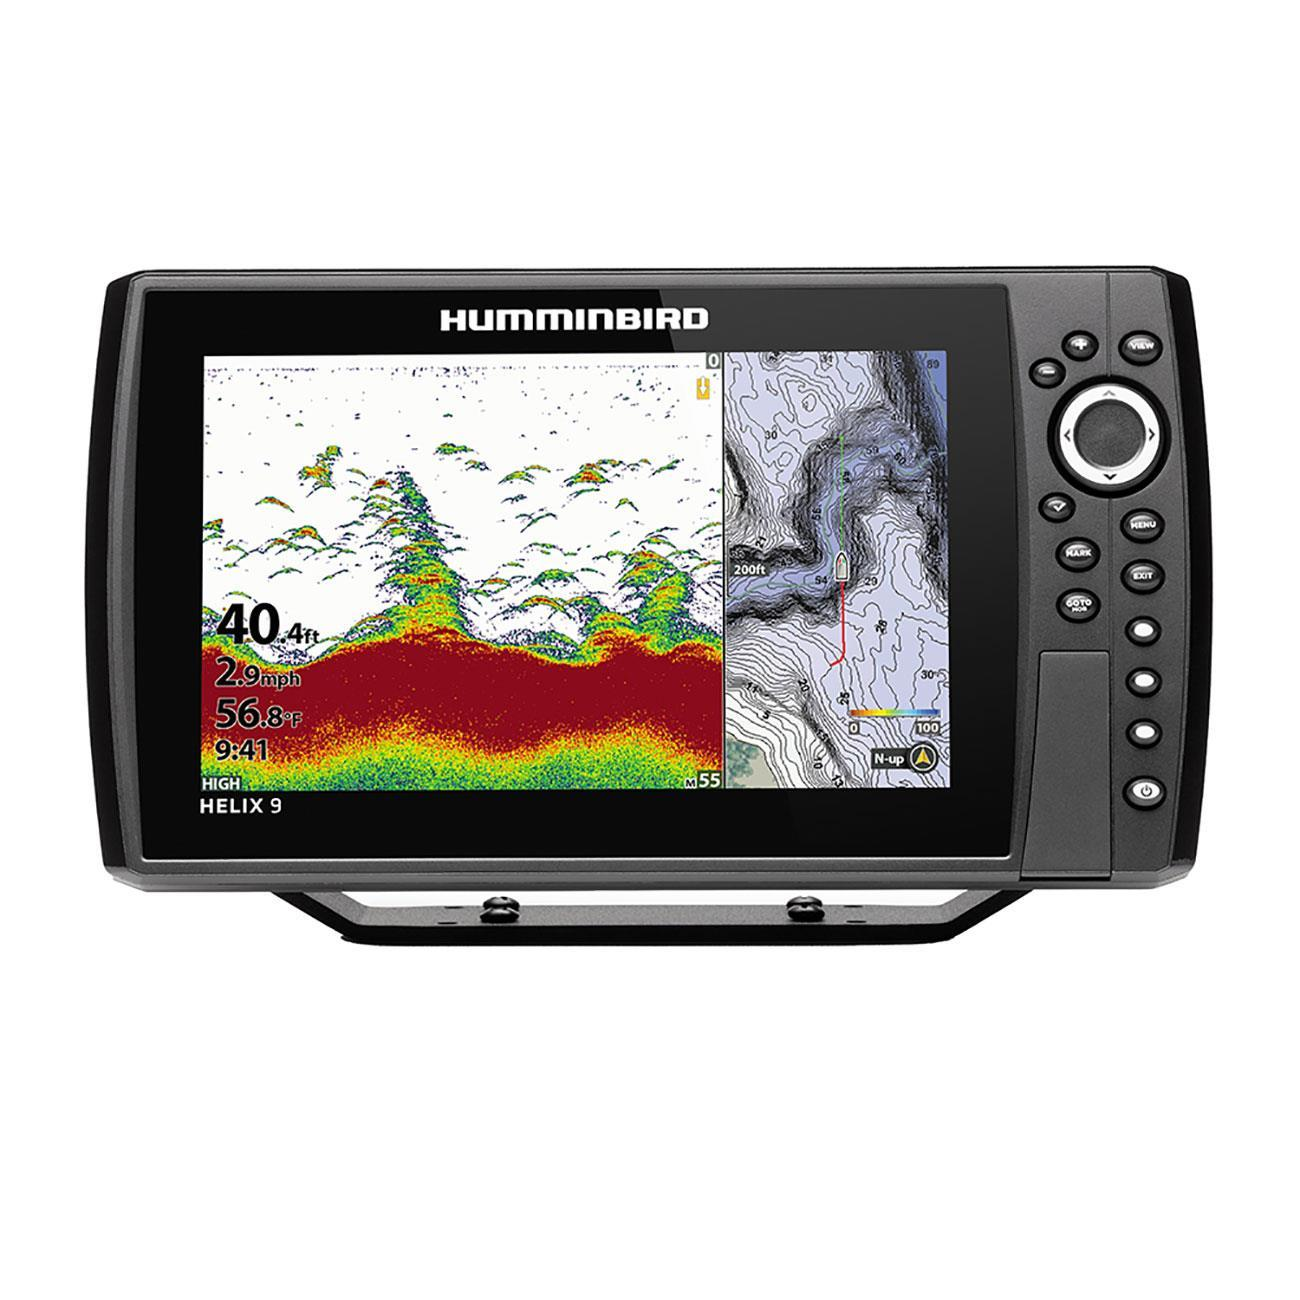 Humminbird 410840-1 Helix 9 Chirp GPS G3N Fishfinder with Bluetooth & Ethernet